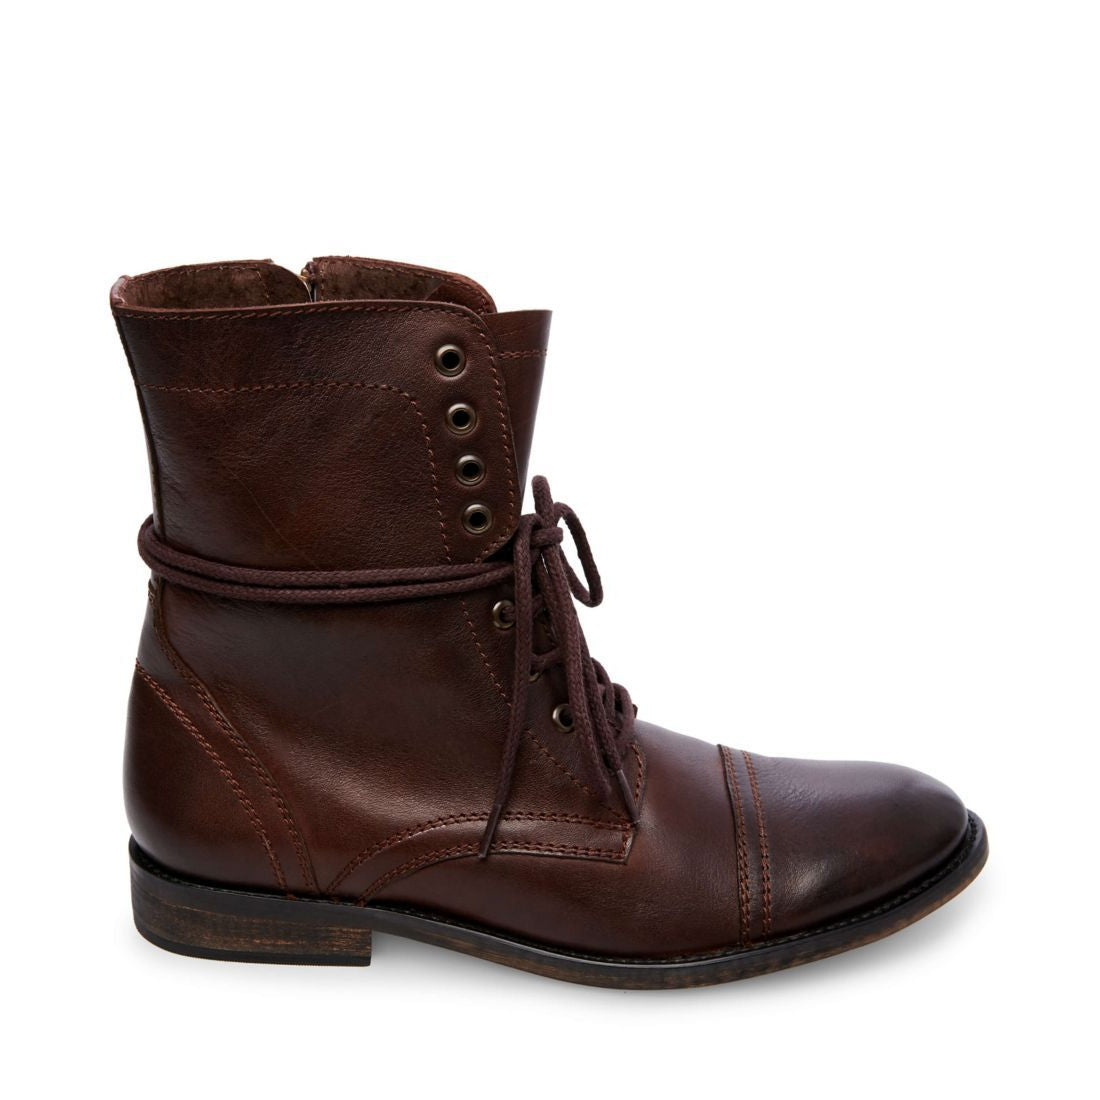 TREK BROWN LEATHER - Steve Madden